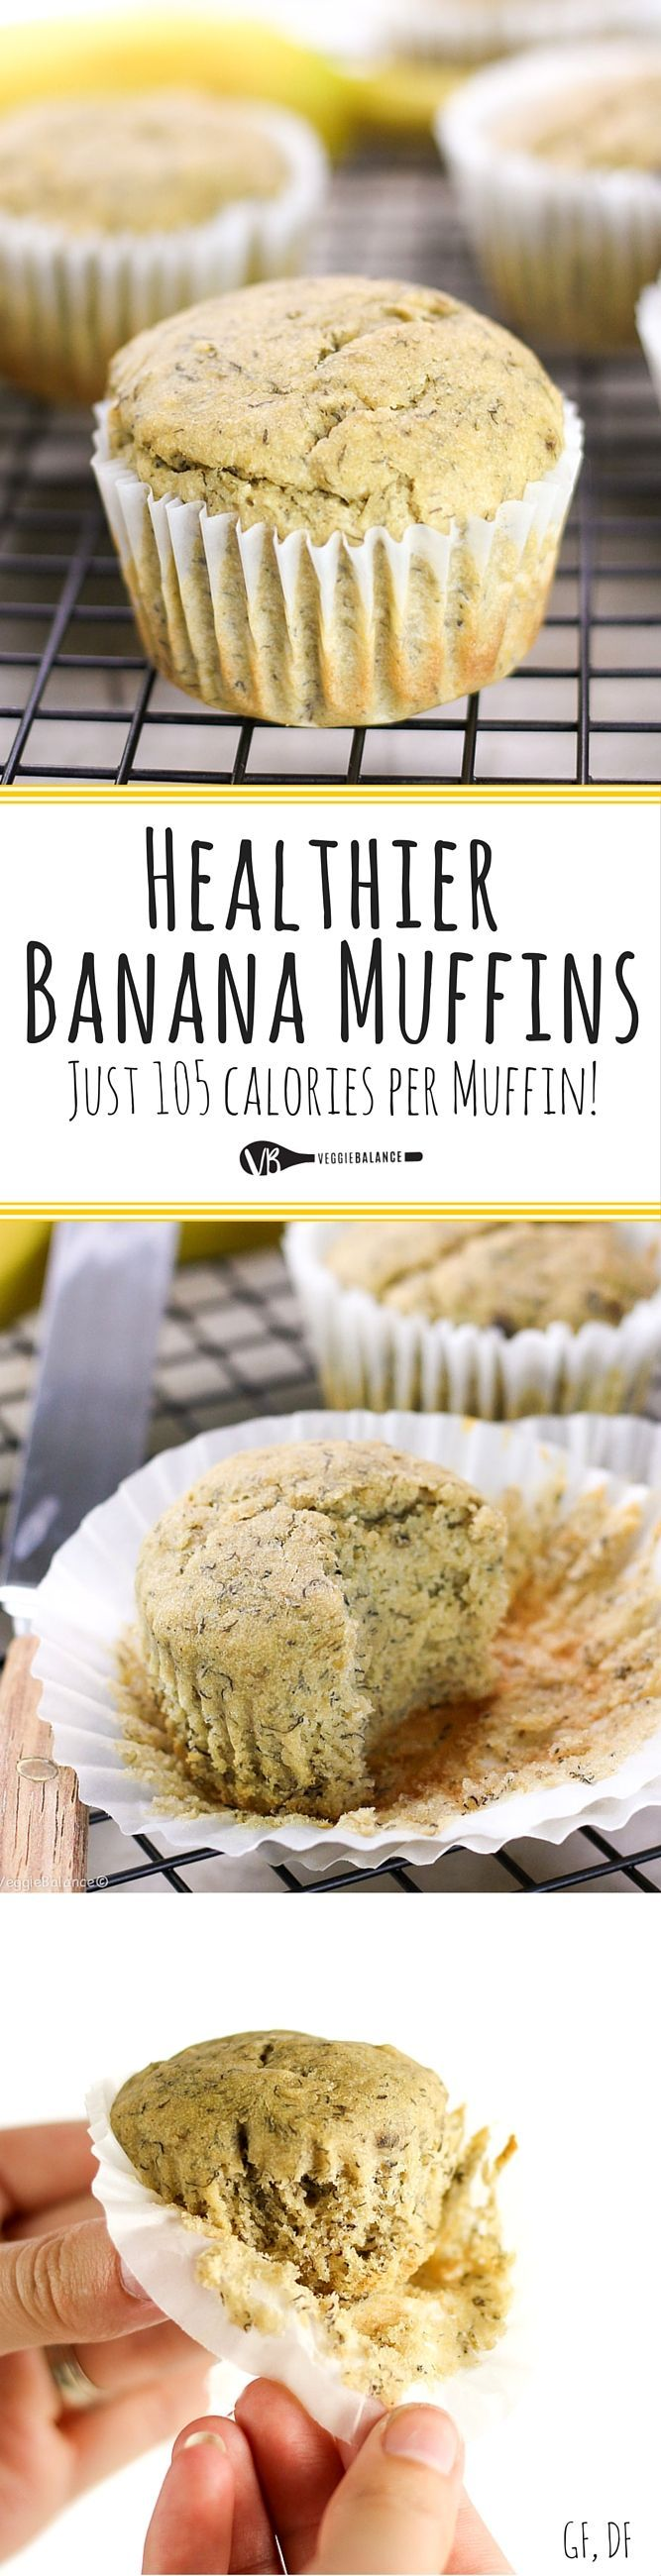 Gluten-Free Banana Muffins recipe made healthy and so easy to whip up on a Saturday morning. Low-Sugar, Gluten-Free, Dairy-Free and Only 105 calories per muffin! #BreakfastWin